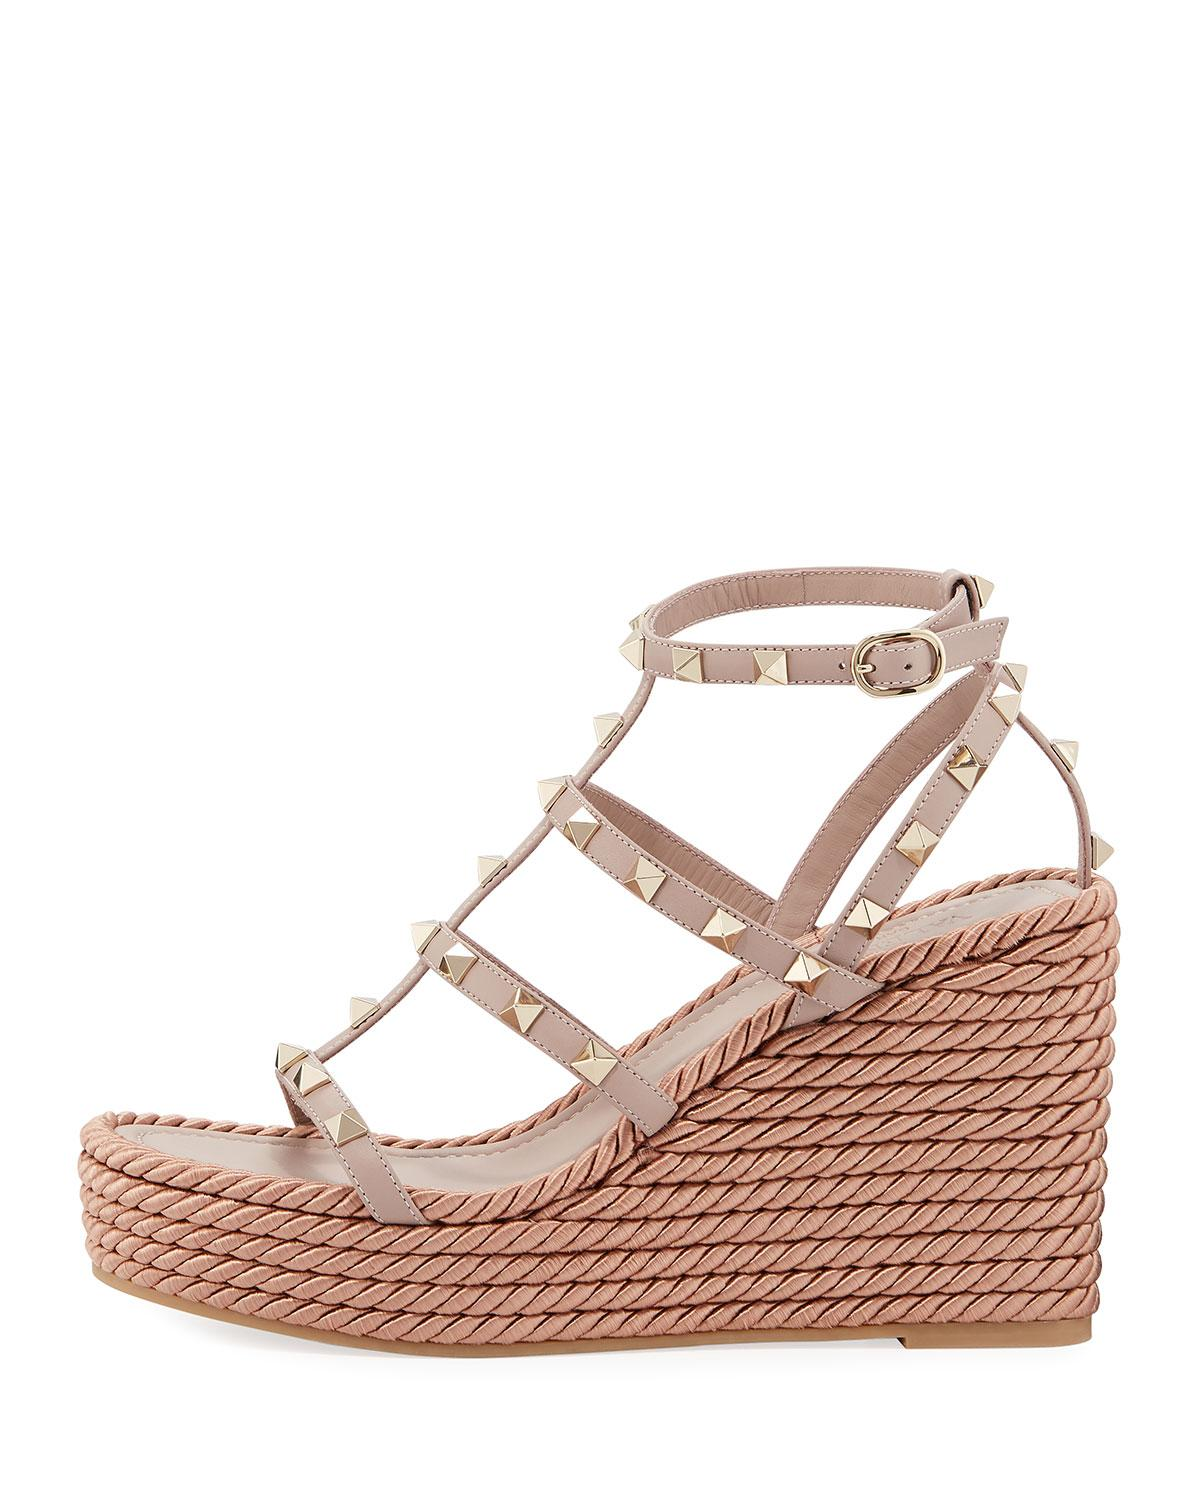 1b97fbd02db Lyst - Valentino Rockstud Caged Wedge Sandals in Natural